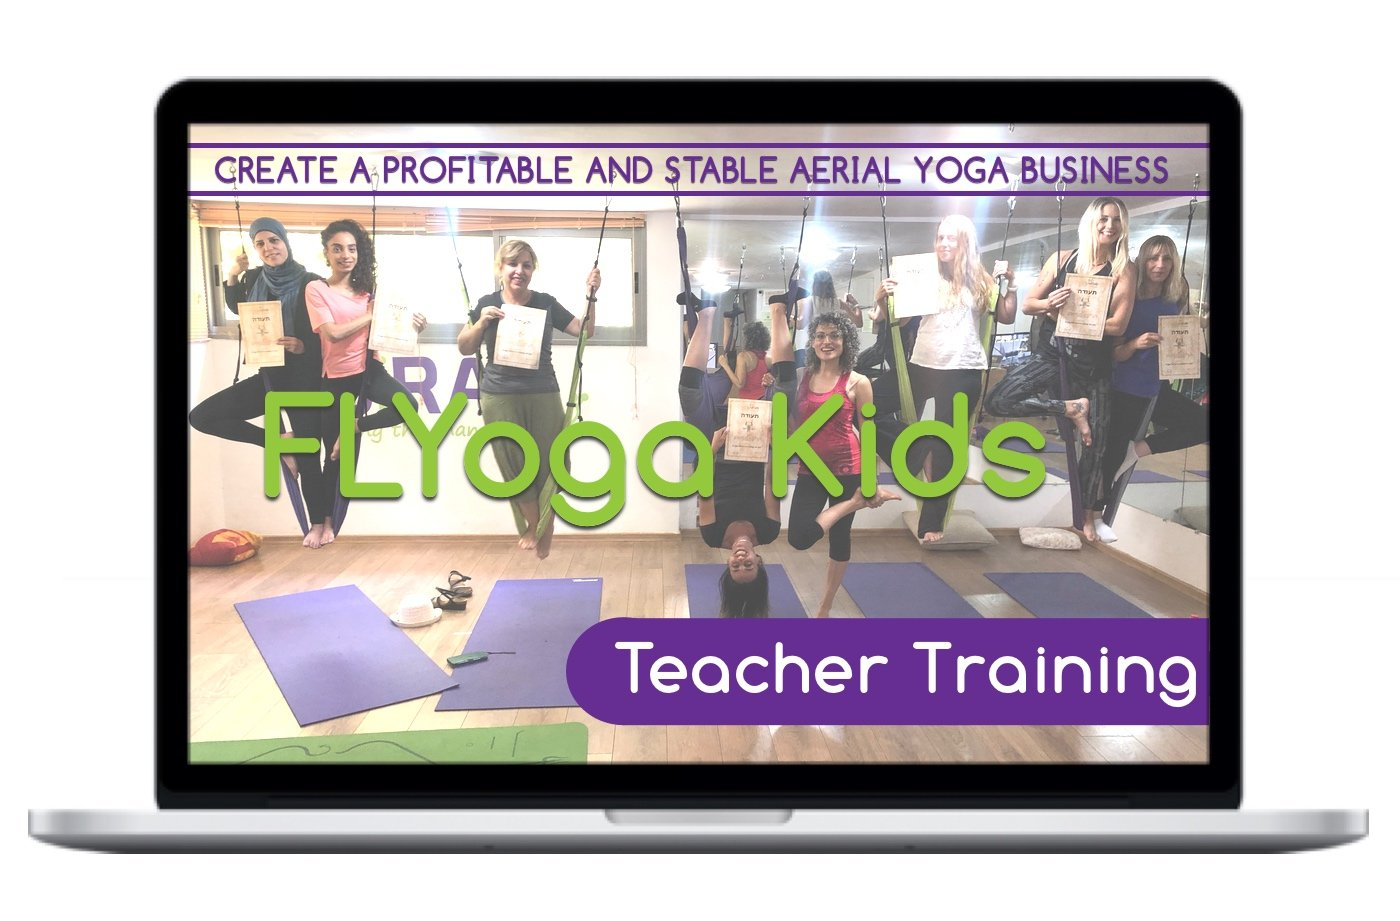 FLYoga teacher training course